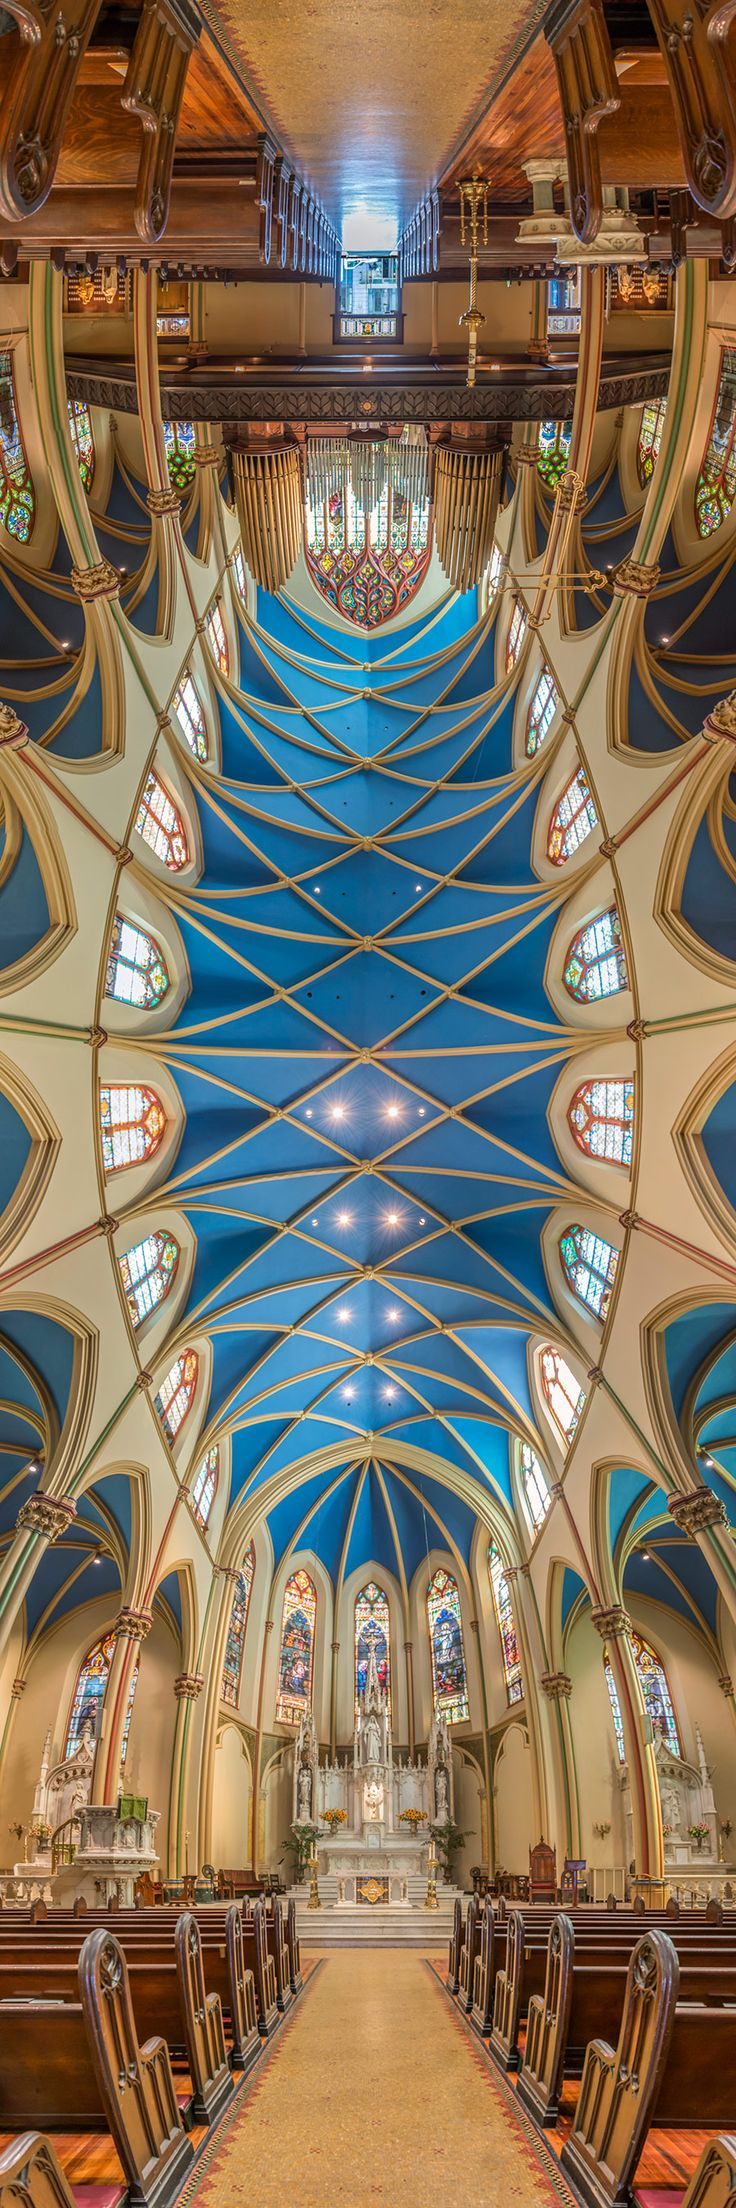 St Monica's Church | Vertical Panoramic Photographs of New York Churches by Richard Silver